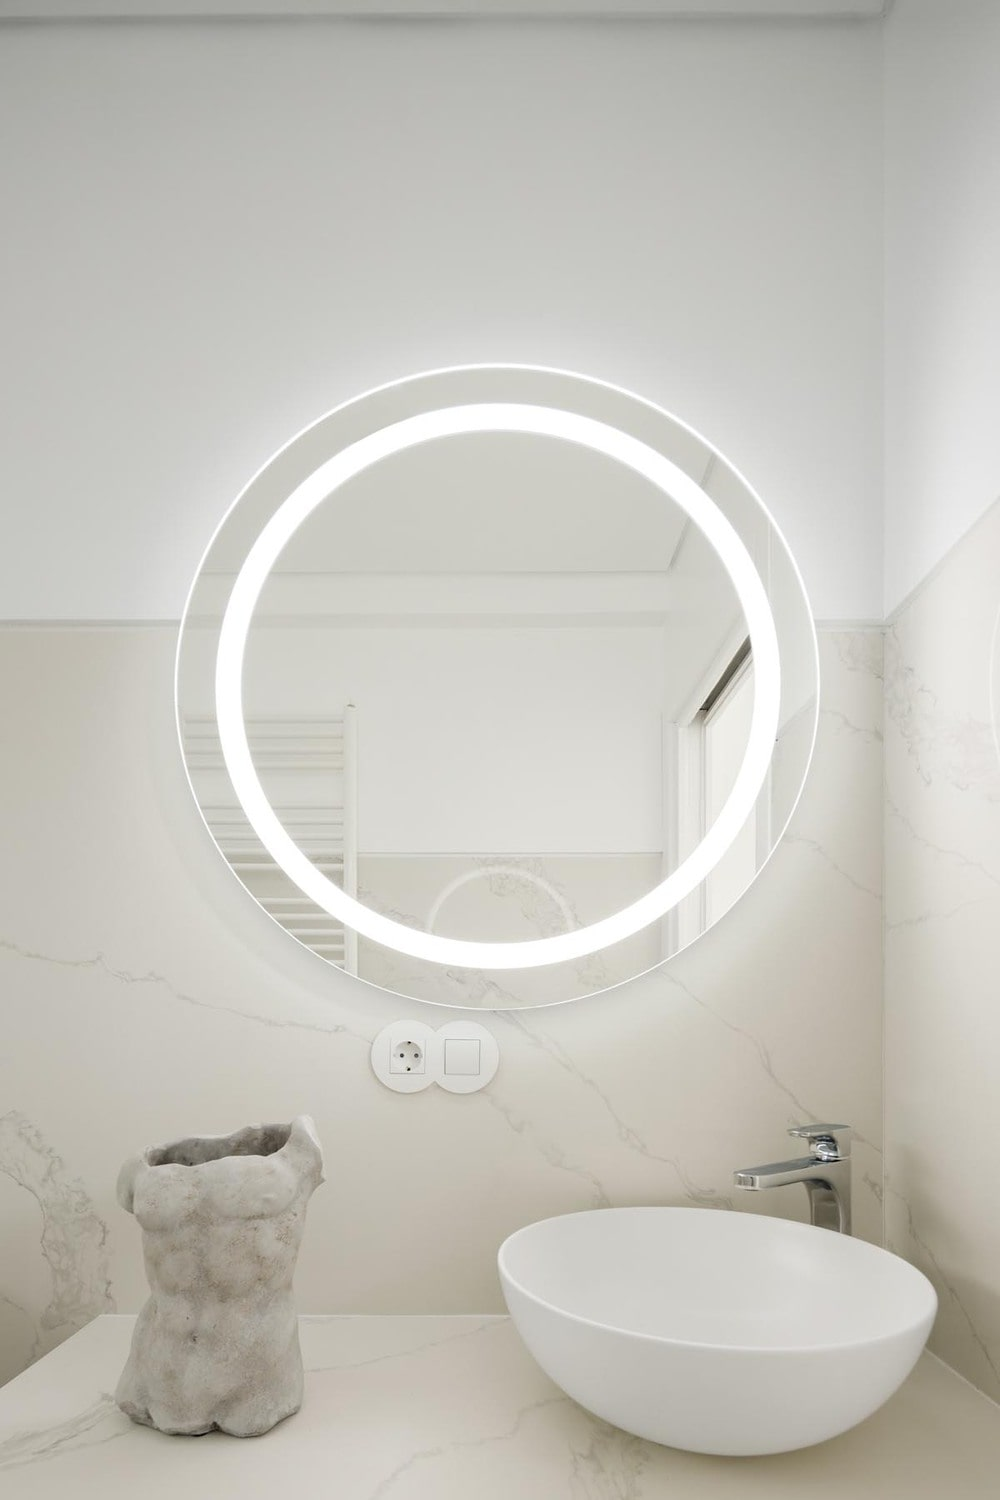 This is a close look at the round wall-mounted vanity mirror with its own lighting.